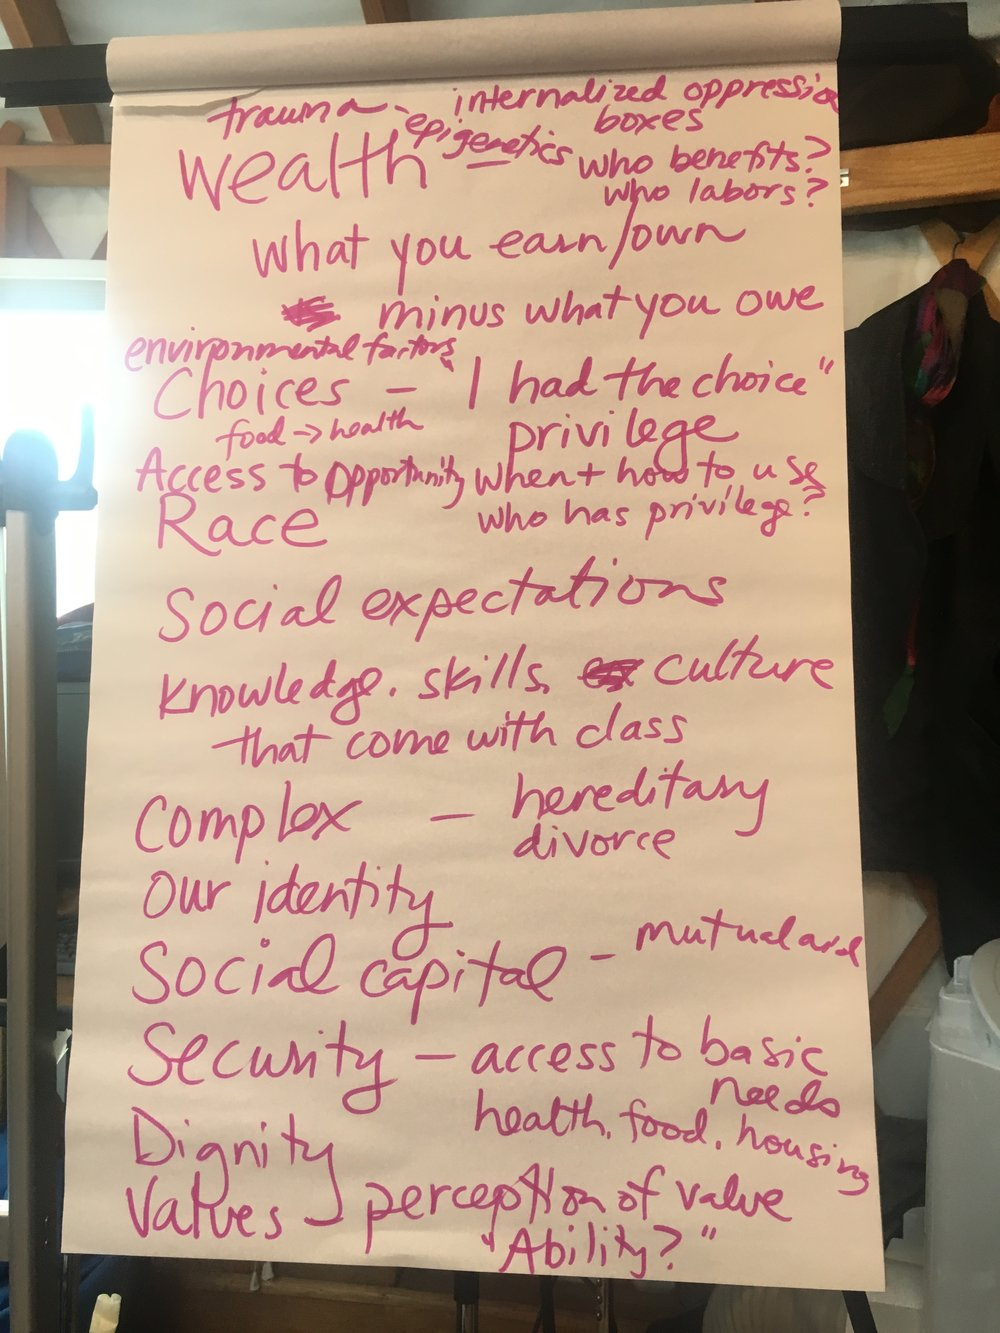 Participants brainstormed the many things that impact one's class.